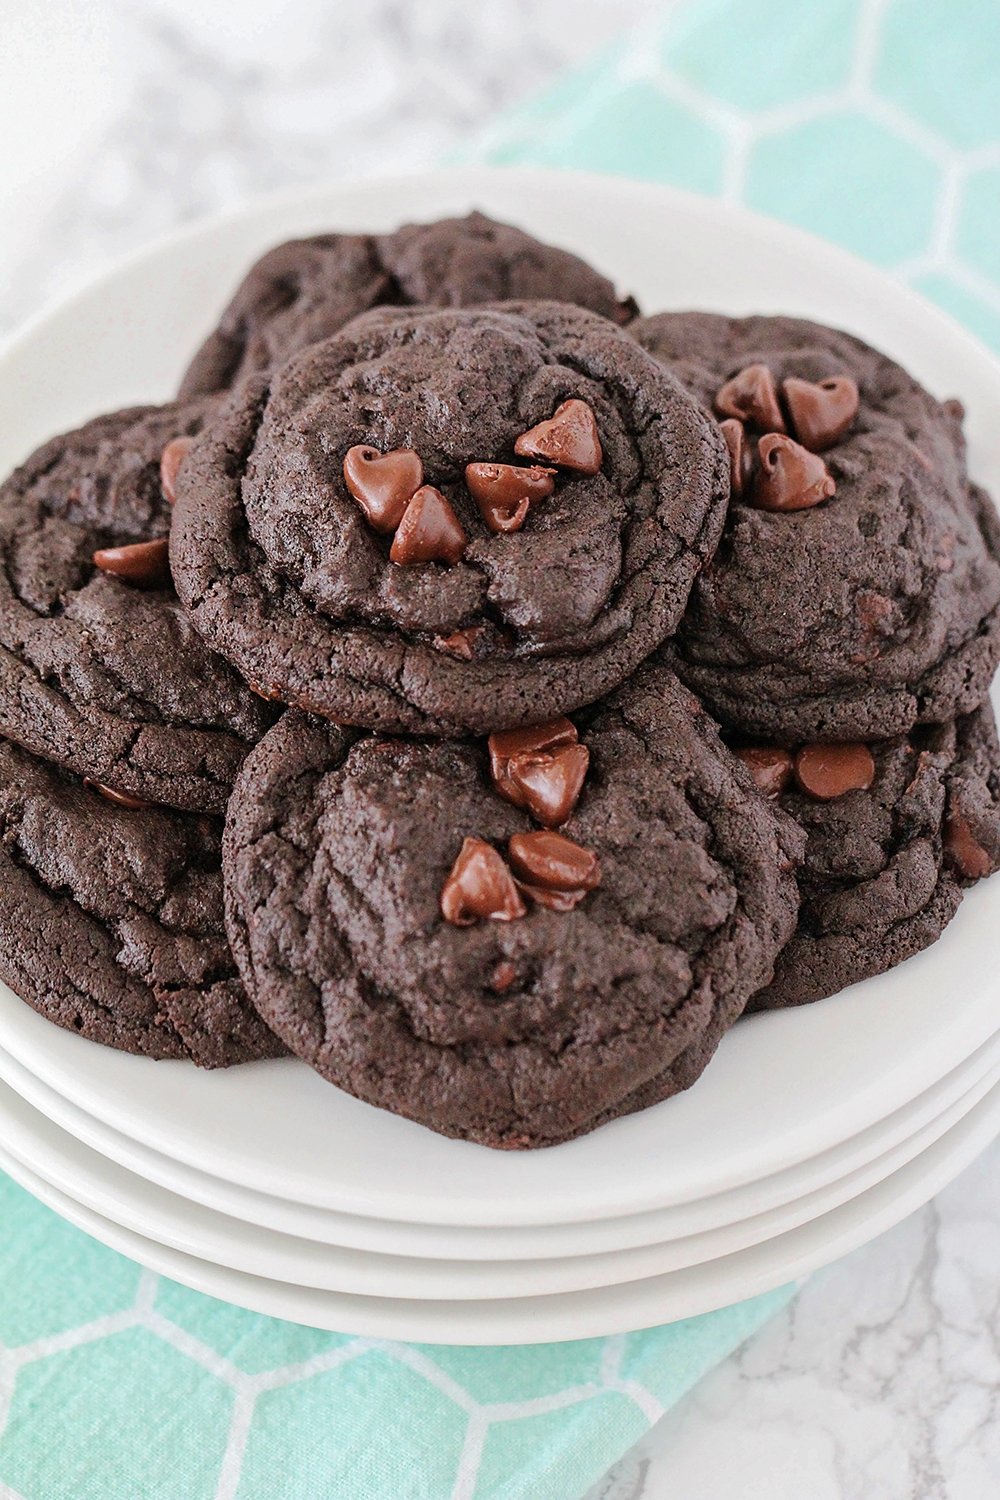 These rich and decadent fudgy double chocolate cookies are the perfect way to satisfy your chocolate craving!